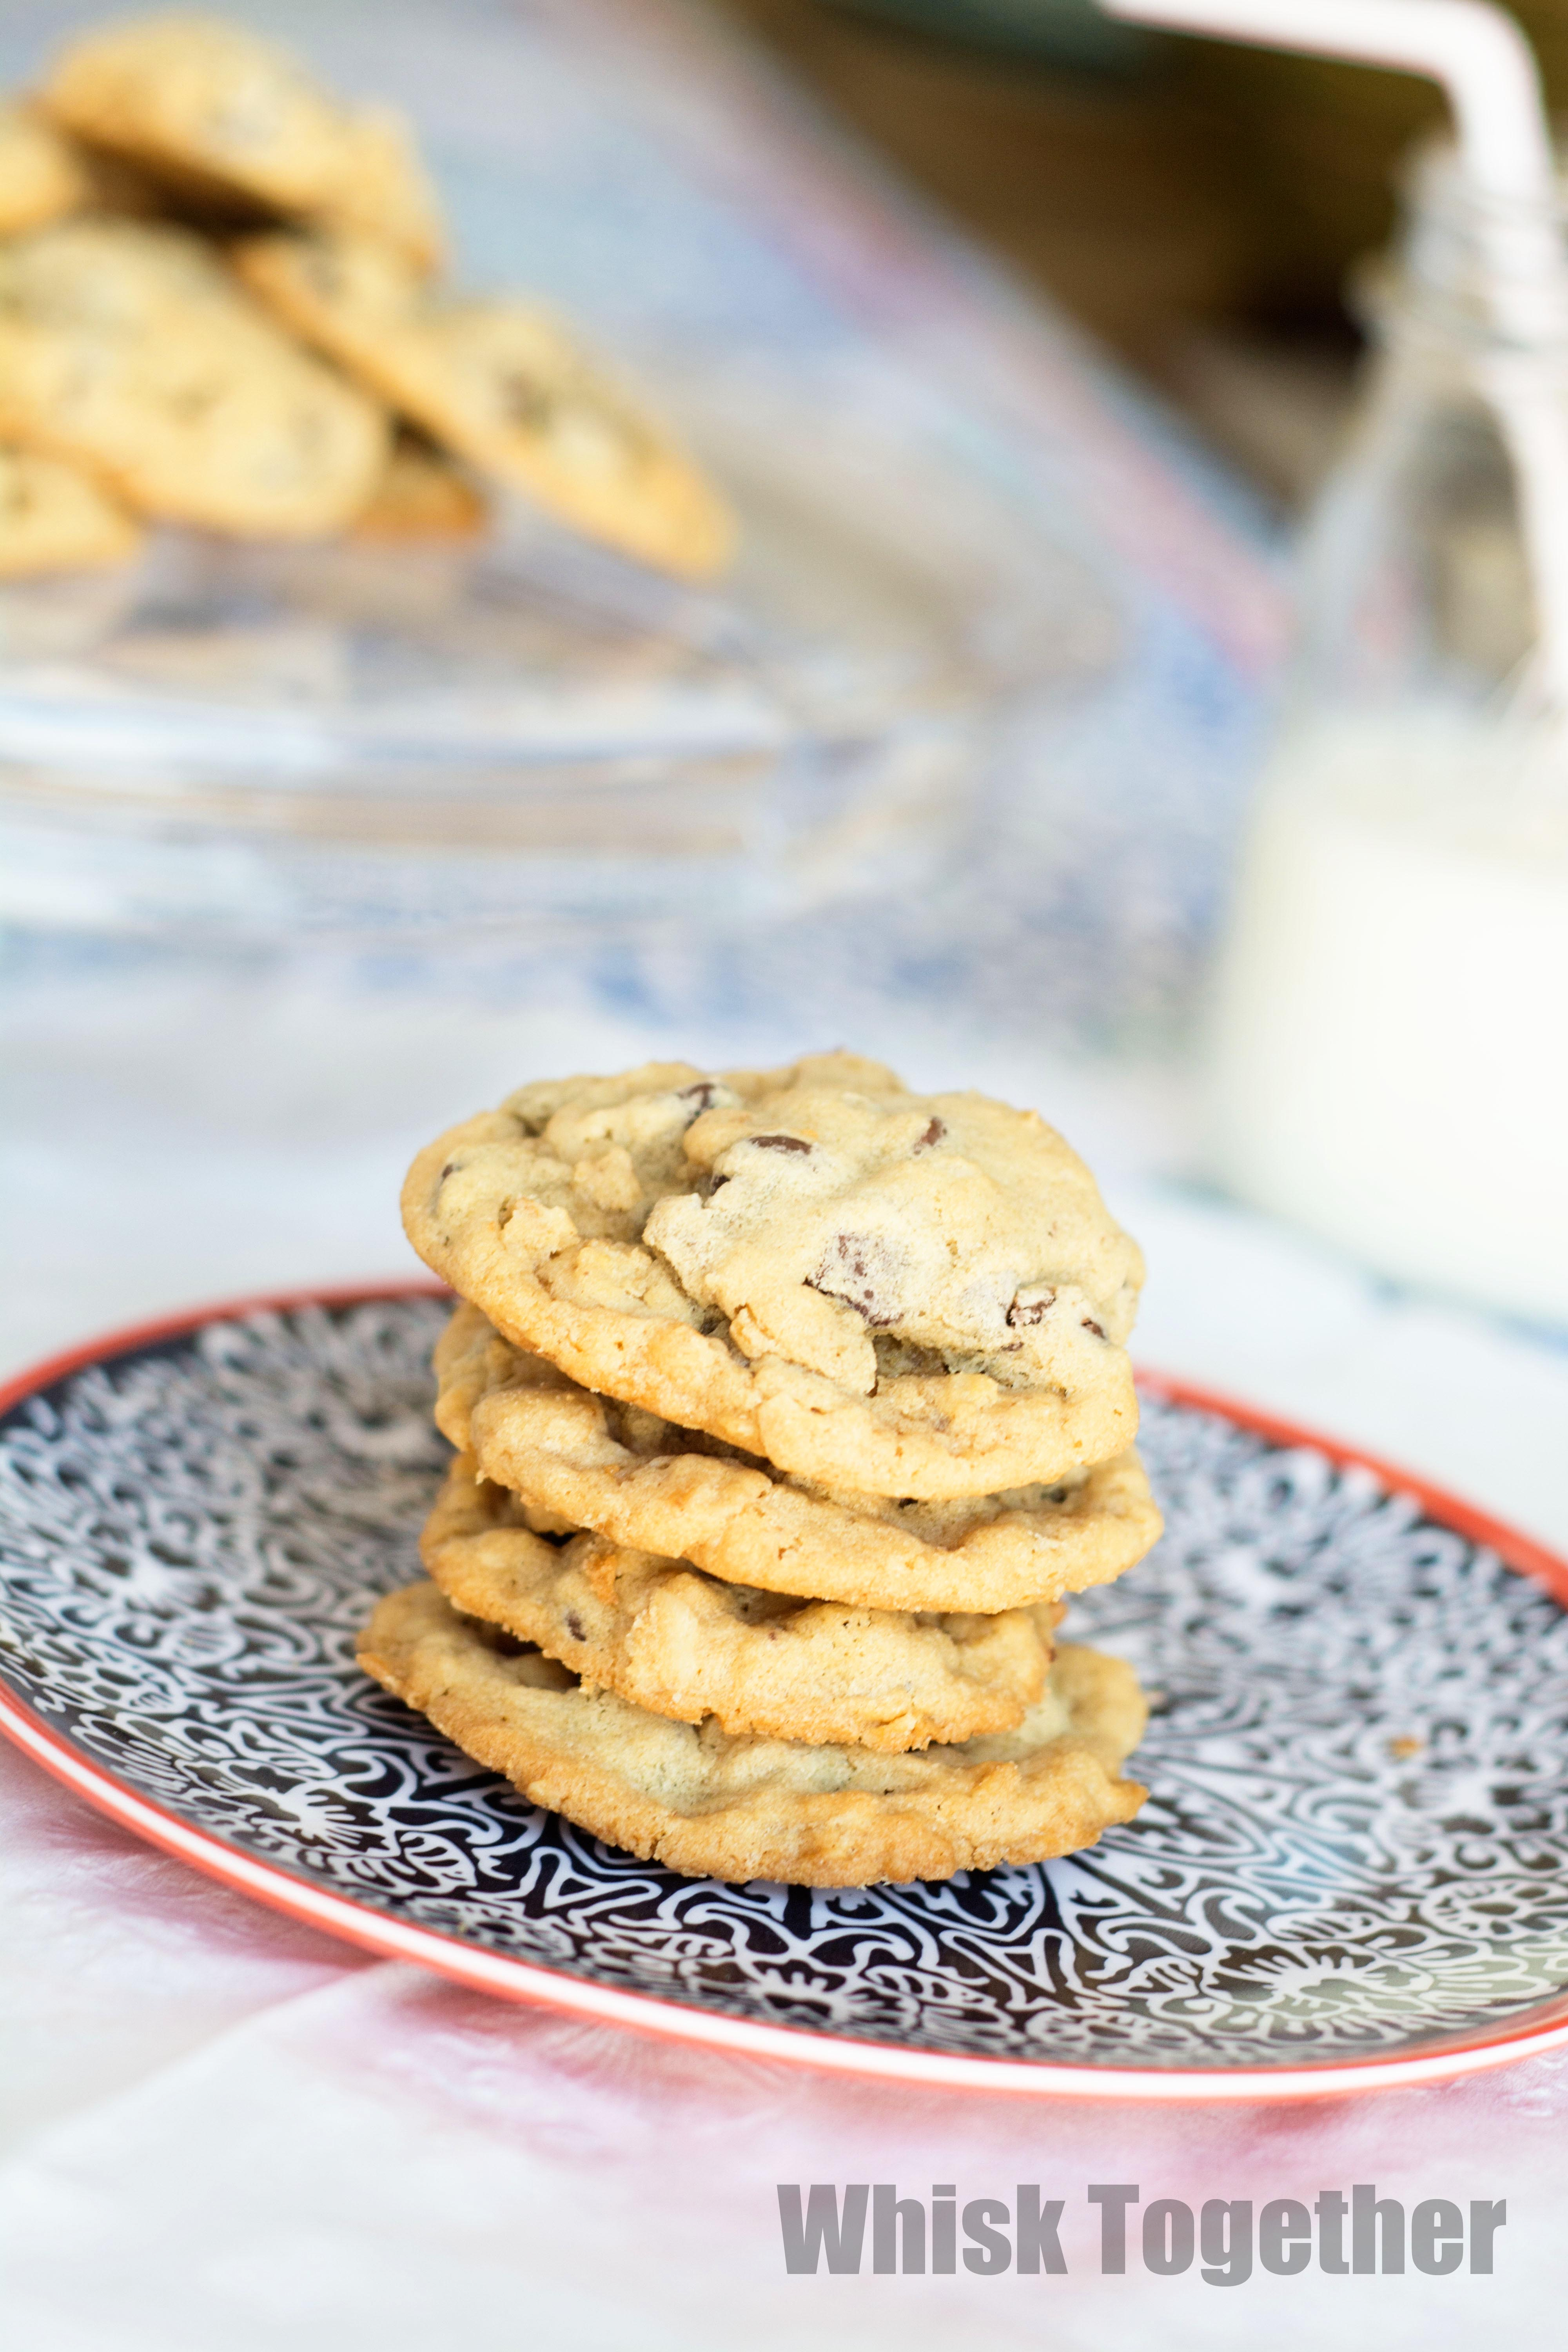 Mary Chewy Gooey Chocolate Chip Cookies